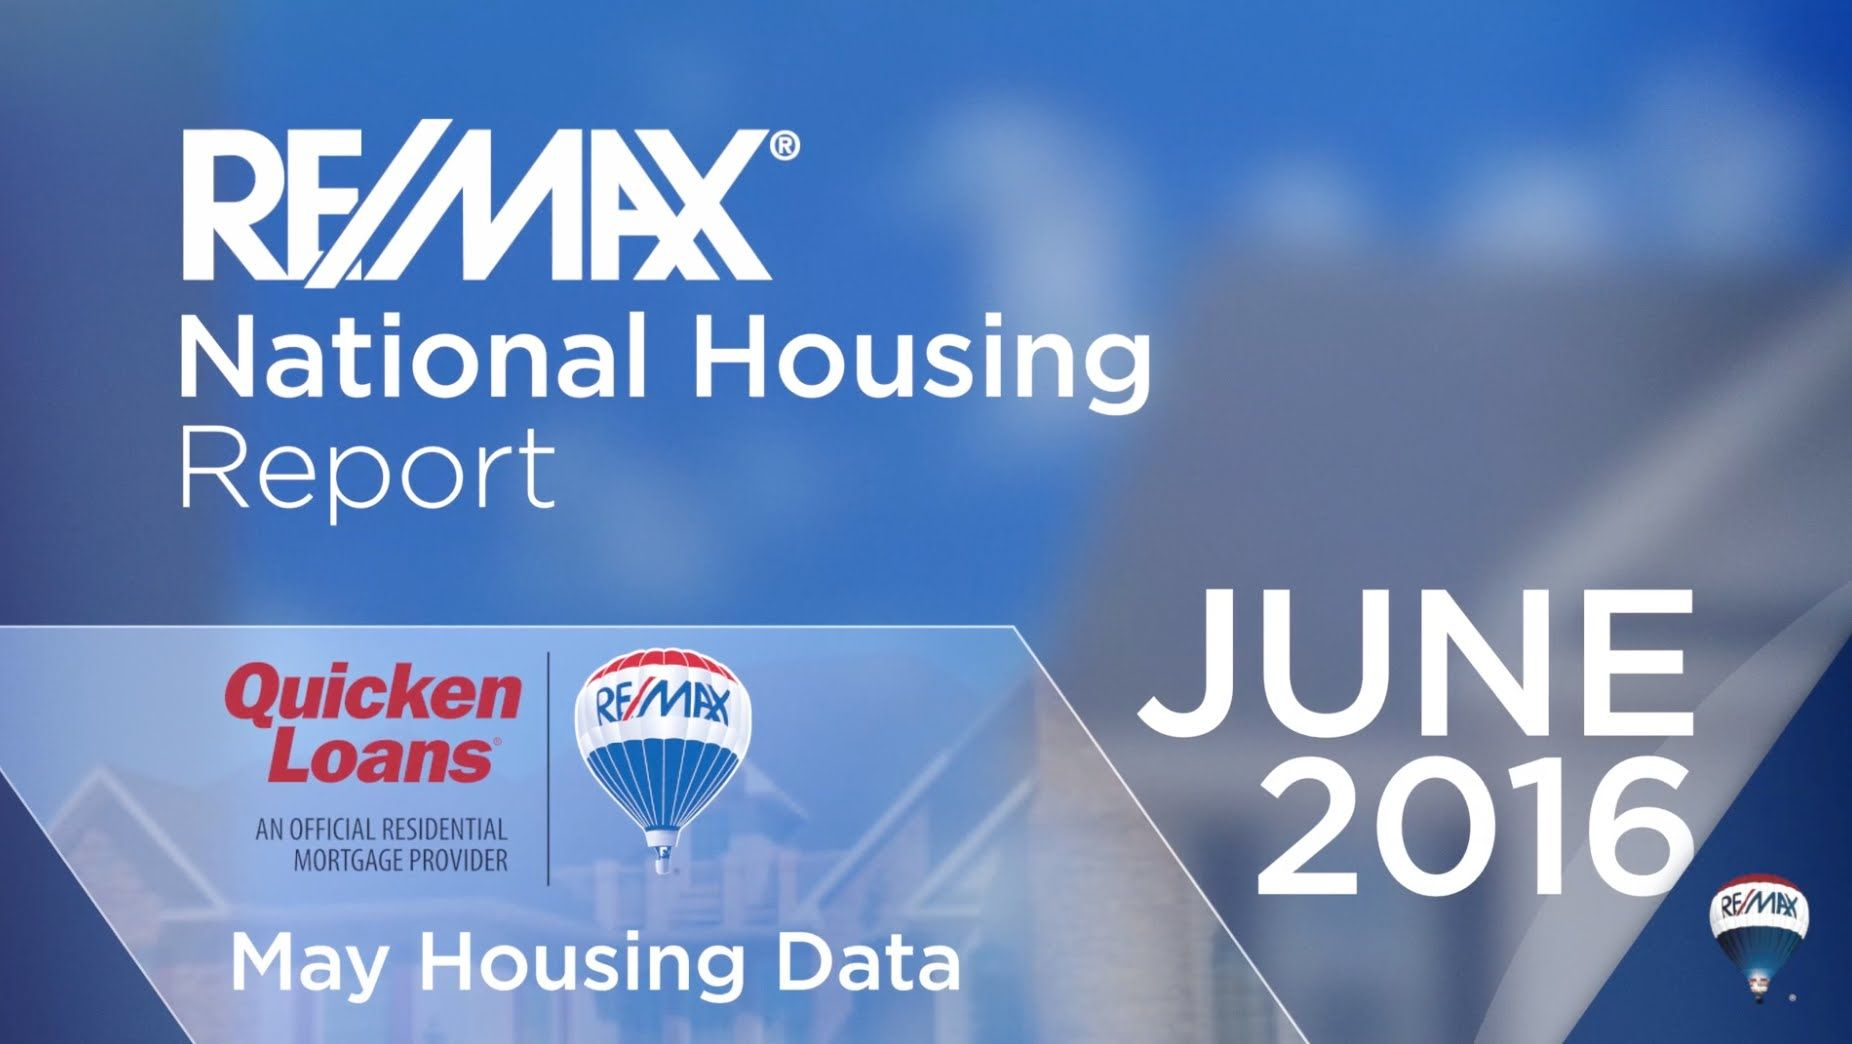 RE MAX National Housing Report June 2016 Remax, National